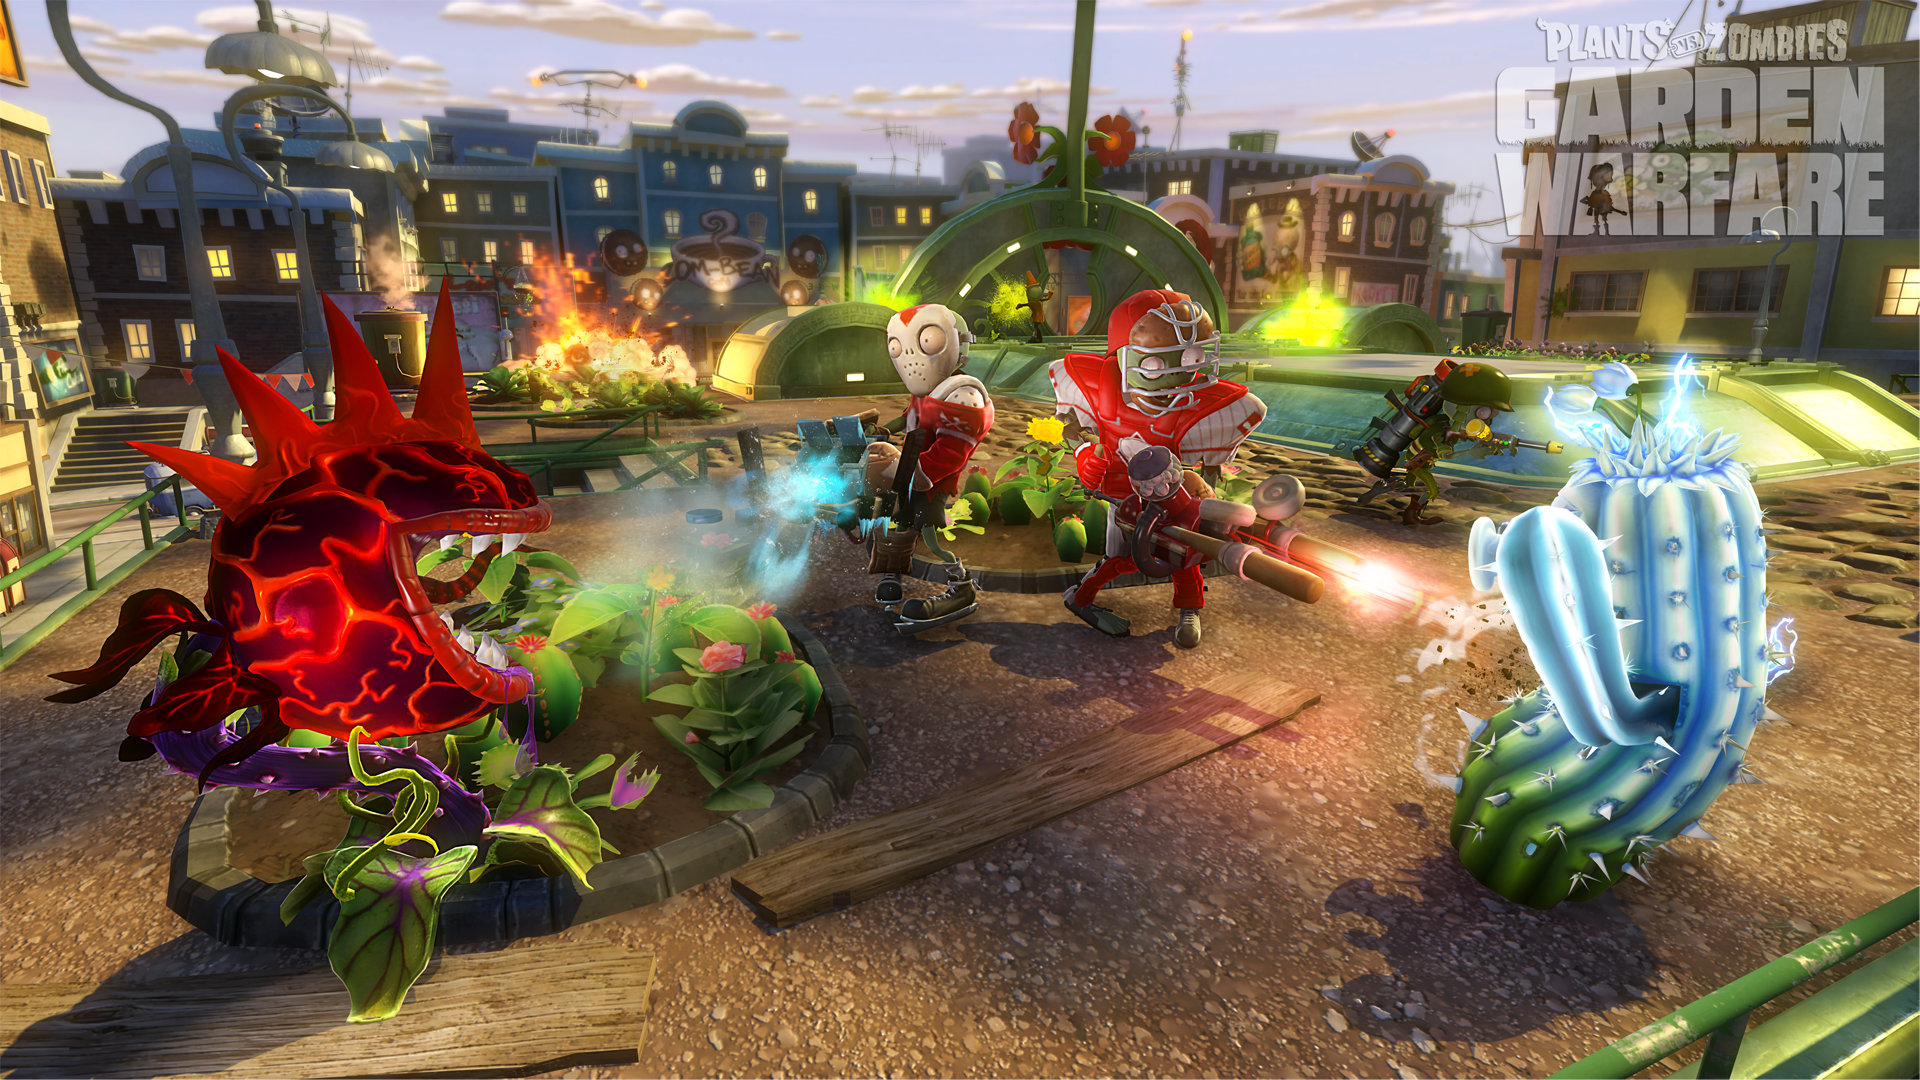 Lovely Plants Vs. Zombies™ Garden Warfare Screenshot 9 Nice Look